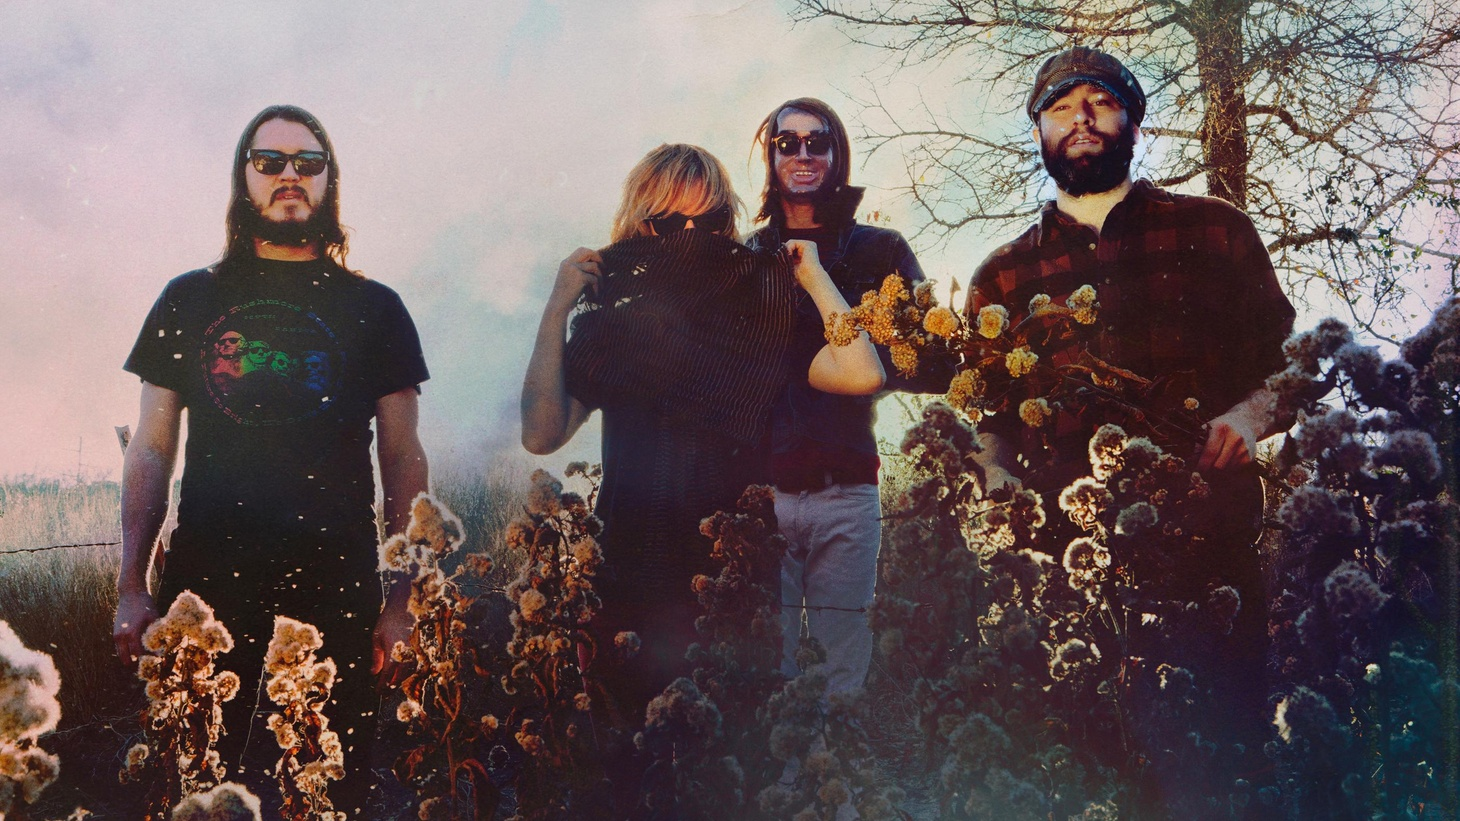 Austin-based psychedelic rockers The Black Angels pack a powerful punch on their upcoming fourth release, a kaleidoscopic trip of epic proportions.